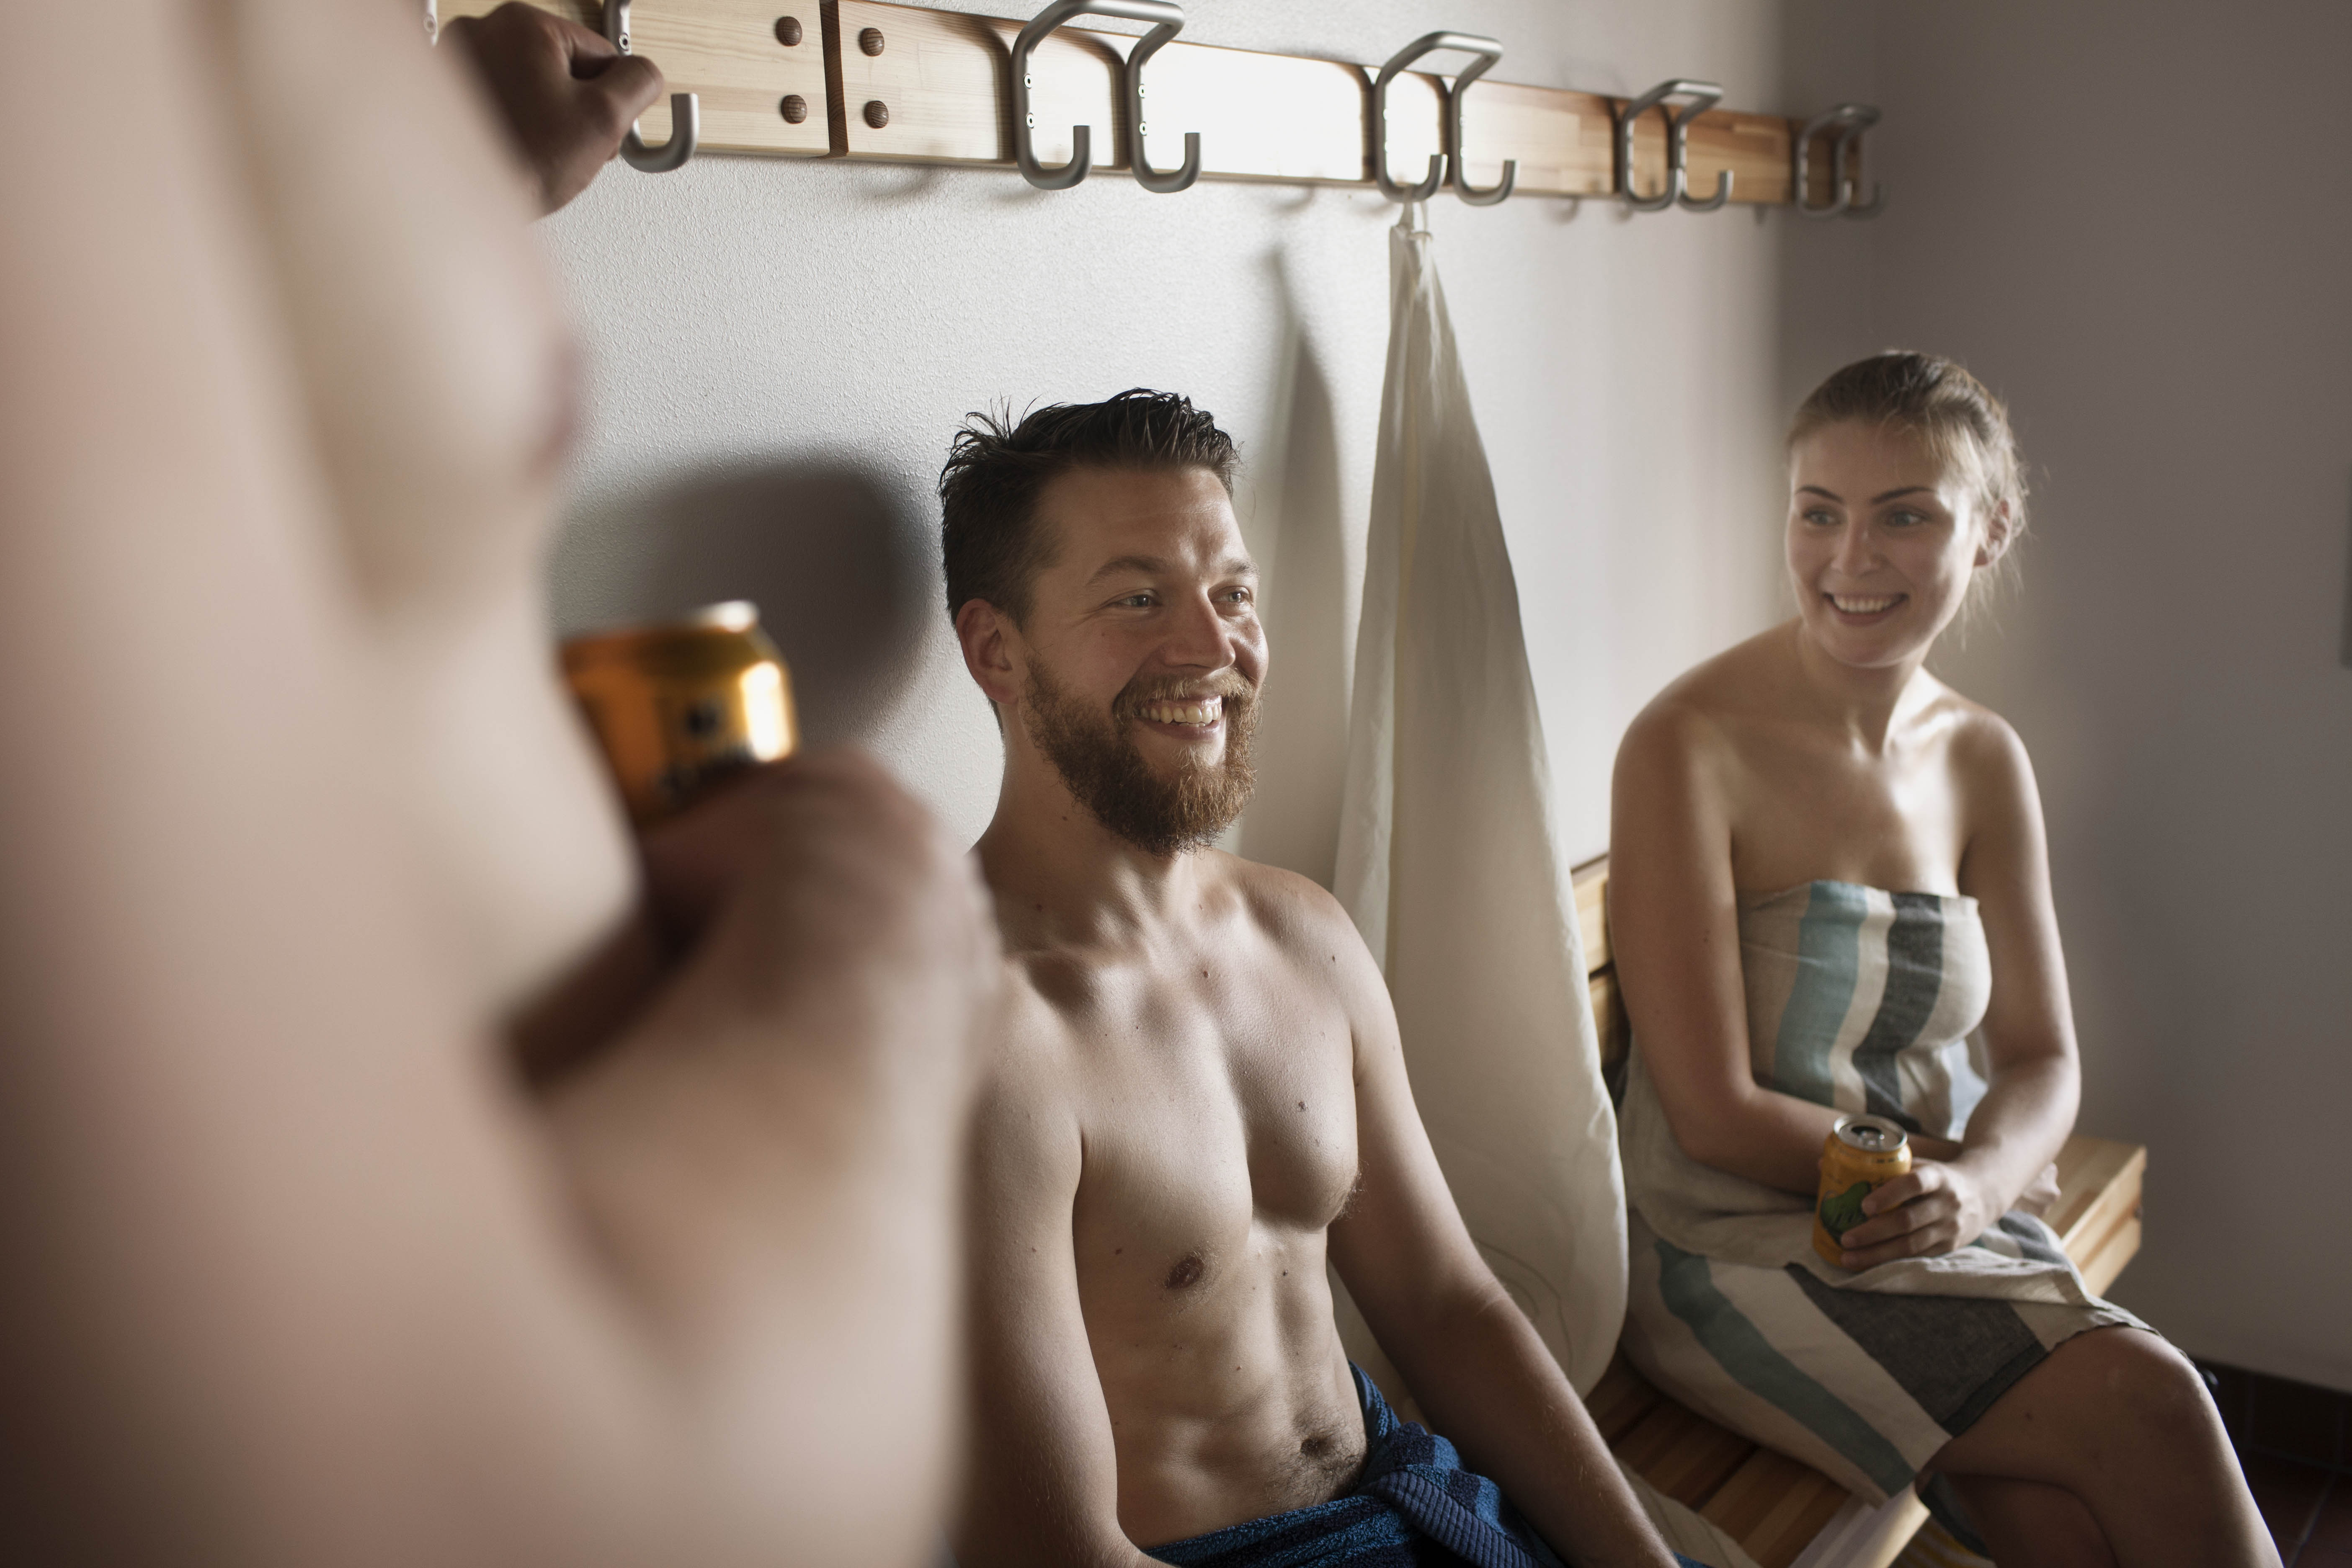 Top 10 Real Sauna Benefits That Sound Totally Exaggerated